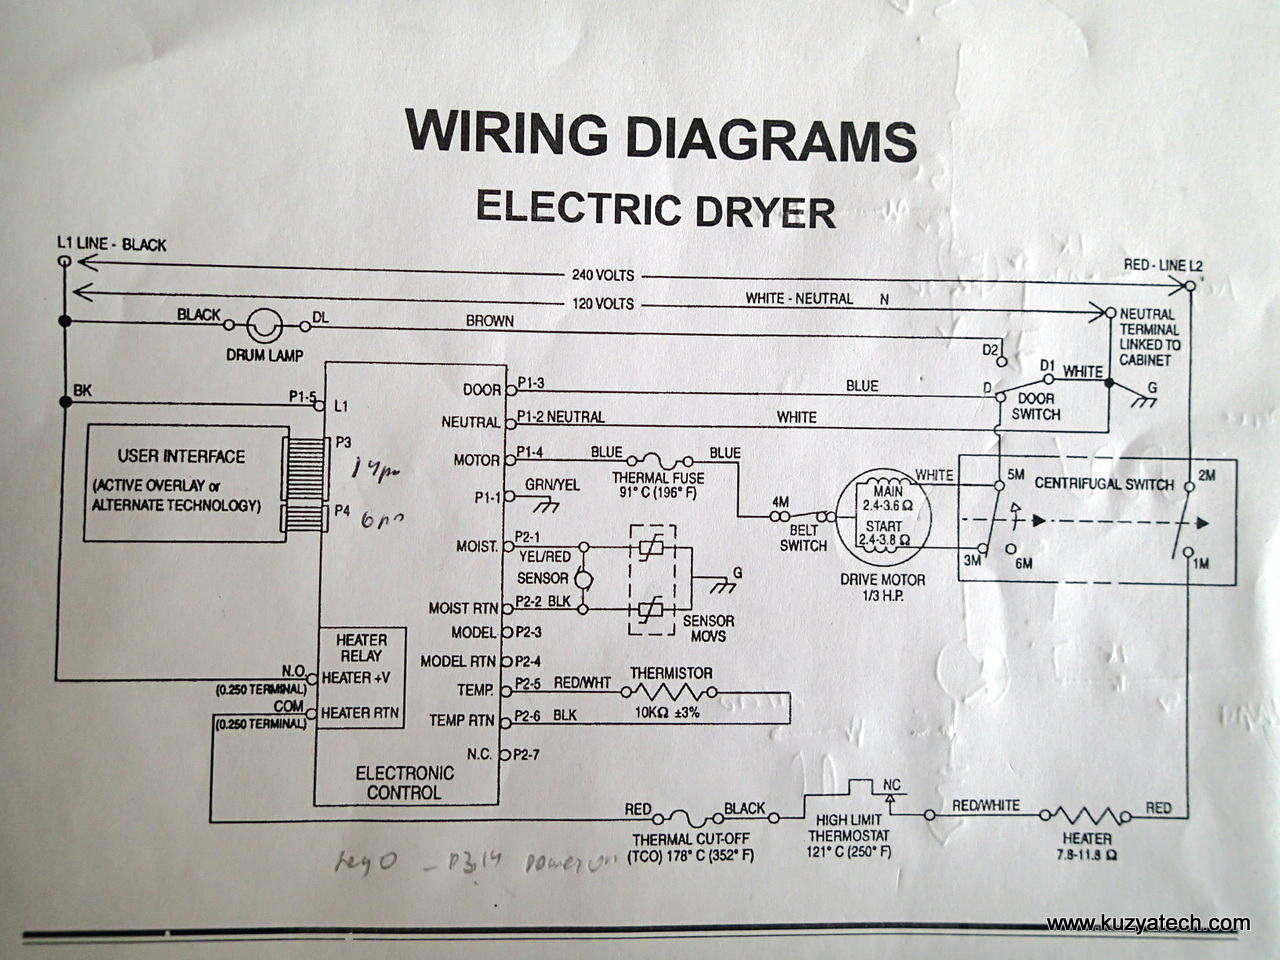 Wiring Diagram For Whirlpool Duet Dryer Heating Element : Wiring diagram for electric clothes dryer oven